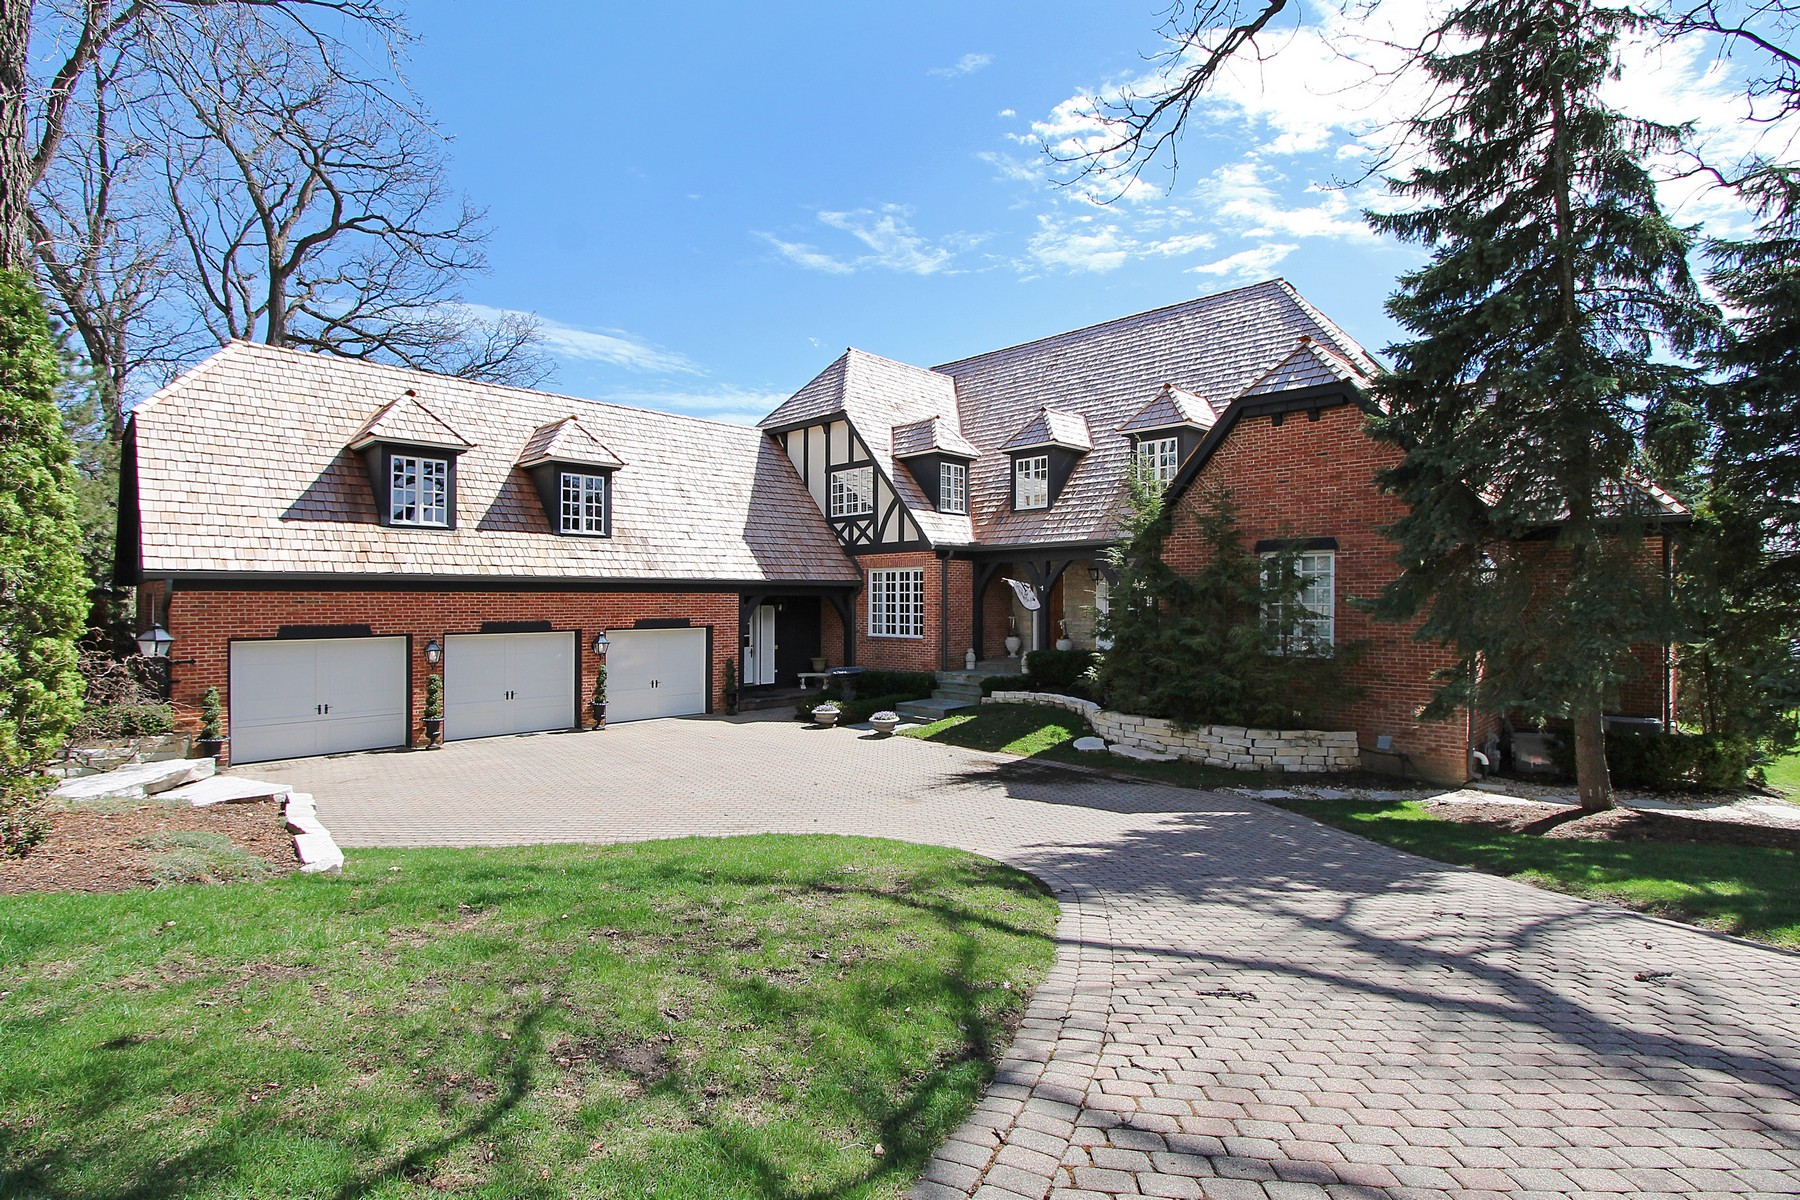 Single Family Home for Sale at Country French Home 29 Riderwood Road North Barrington, 60010 United States